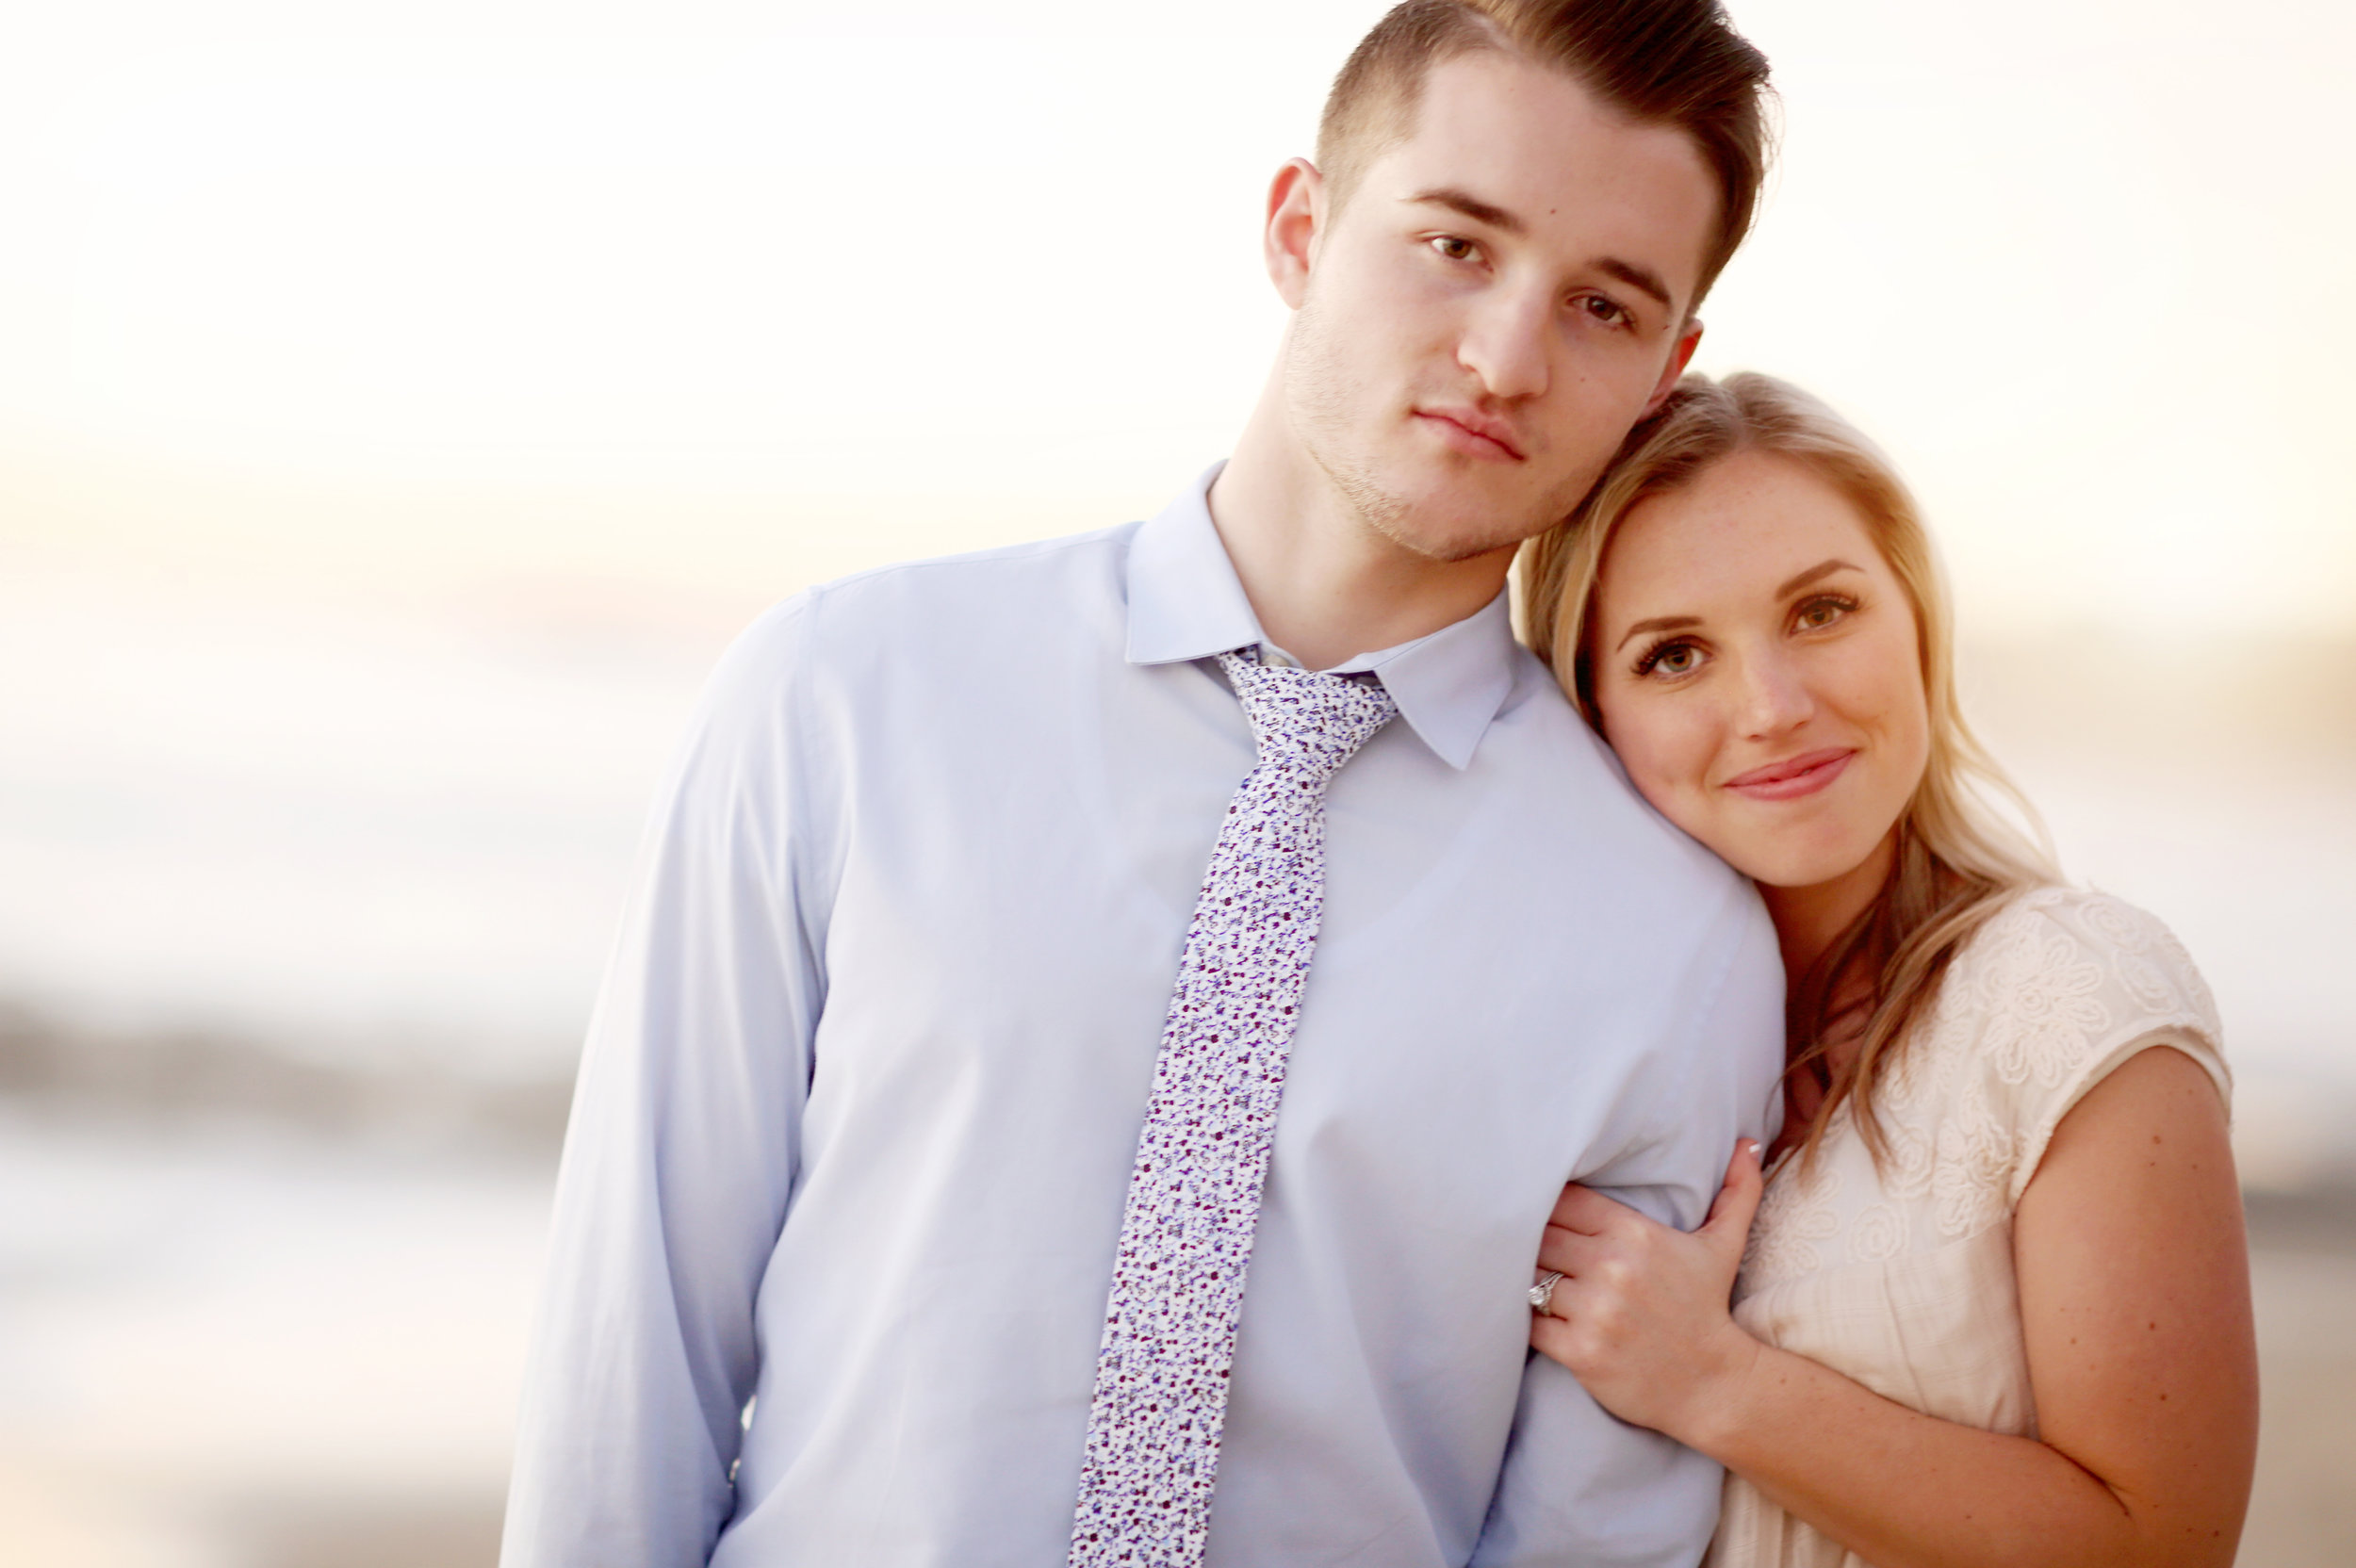 Rolling waves are the backdrop for this engagement beach image.